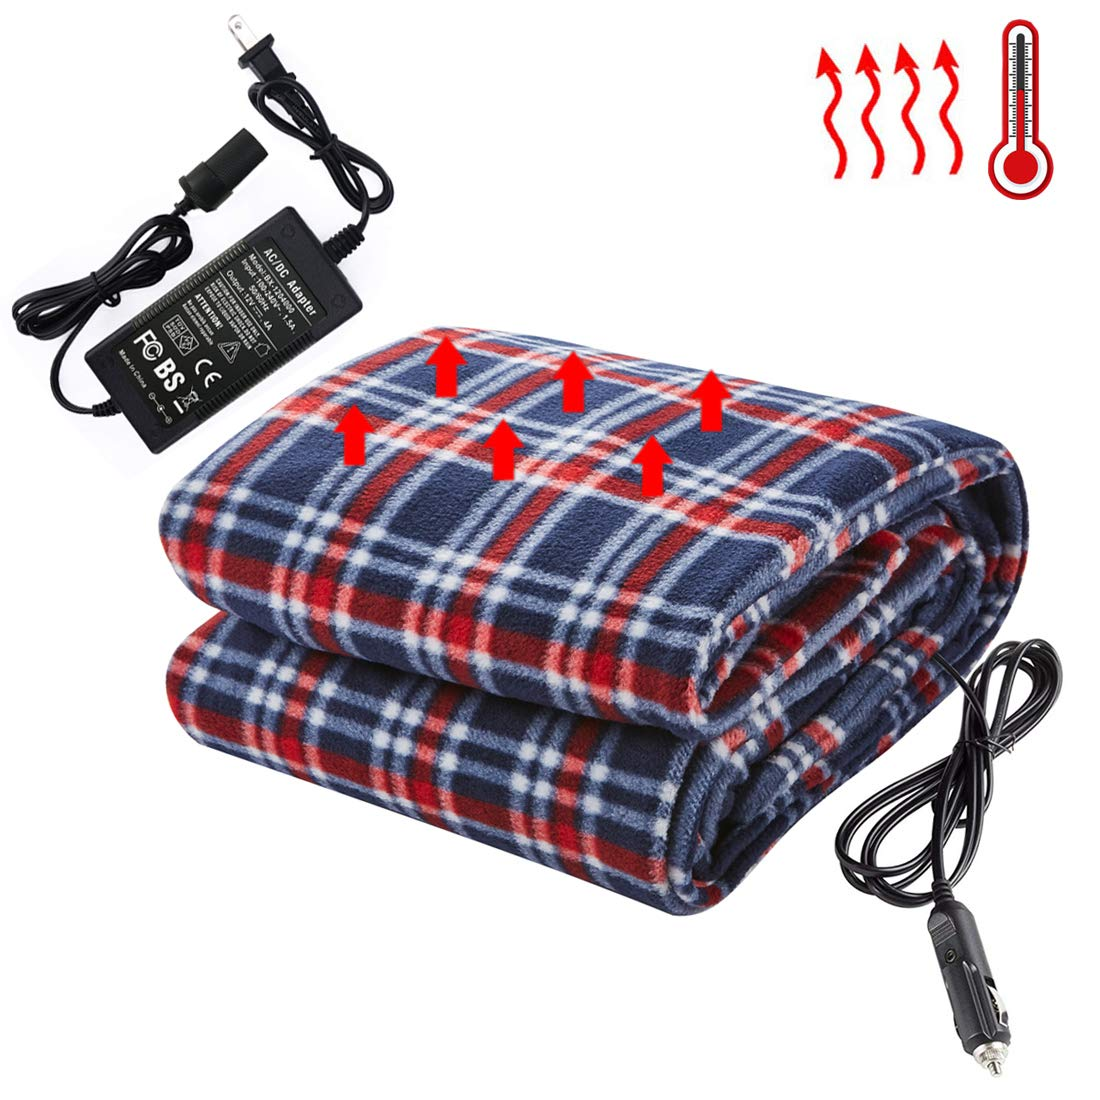 "Big Hippo Electric Car Blanket, 12-Volt Heated Travel Blanket Throw with AC Adapter -Heating Blanket Great for Cold Weather, Camping, Home, Office, Car Use (Red/Blue, 58""x 41"")"